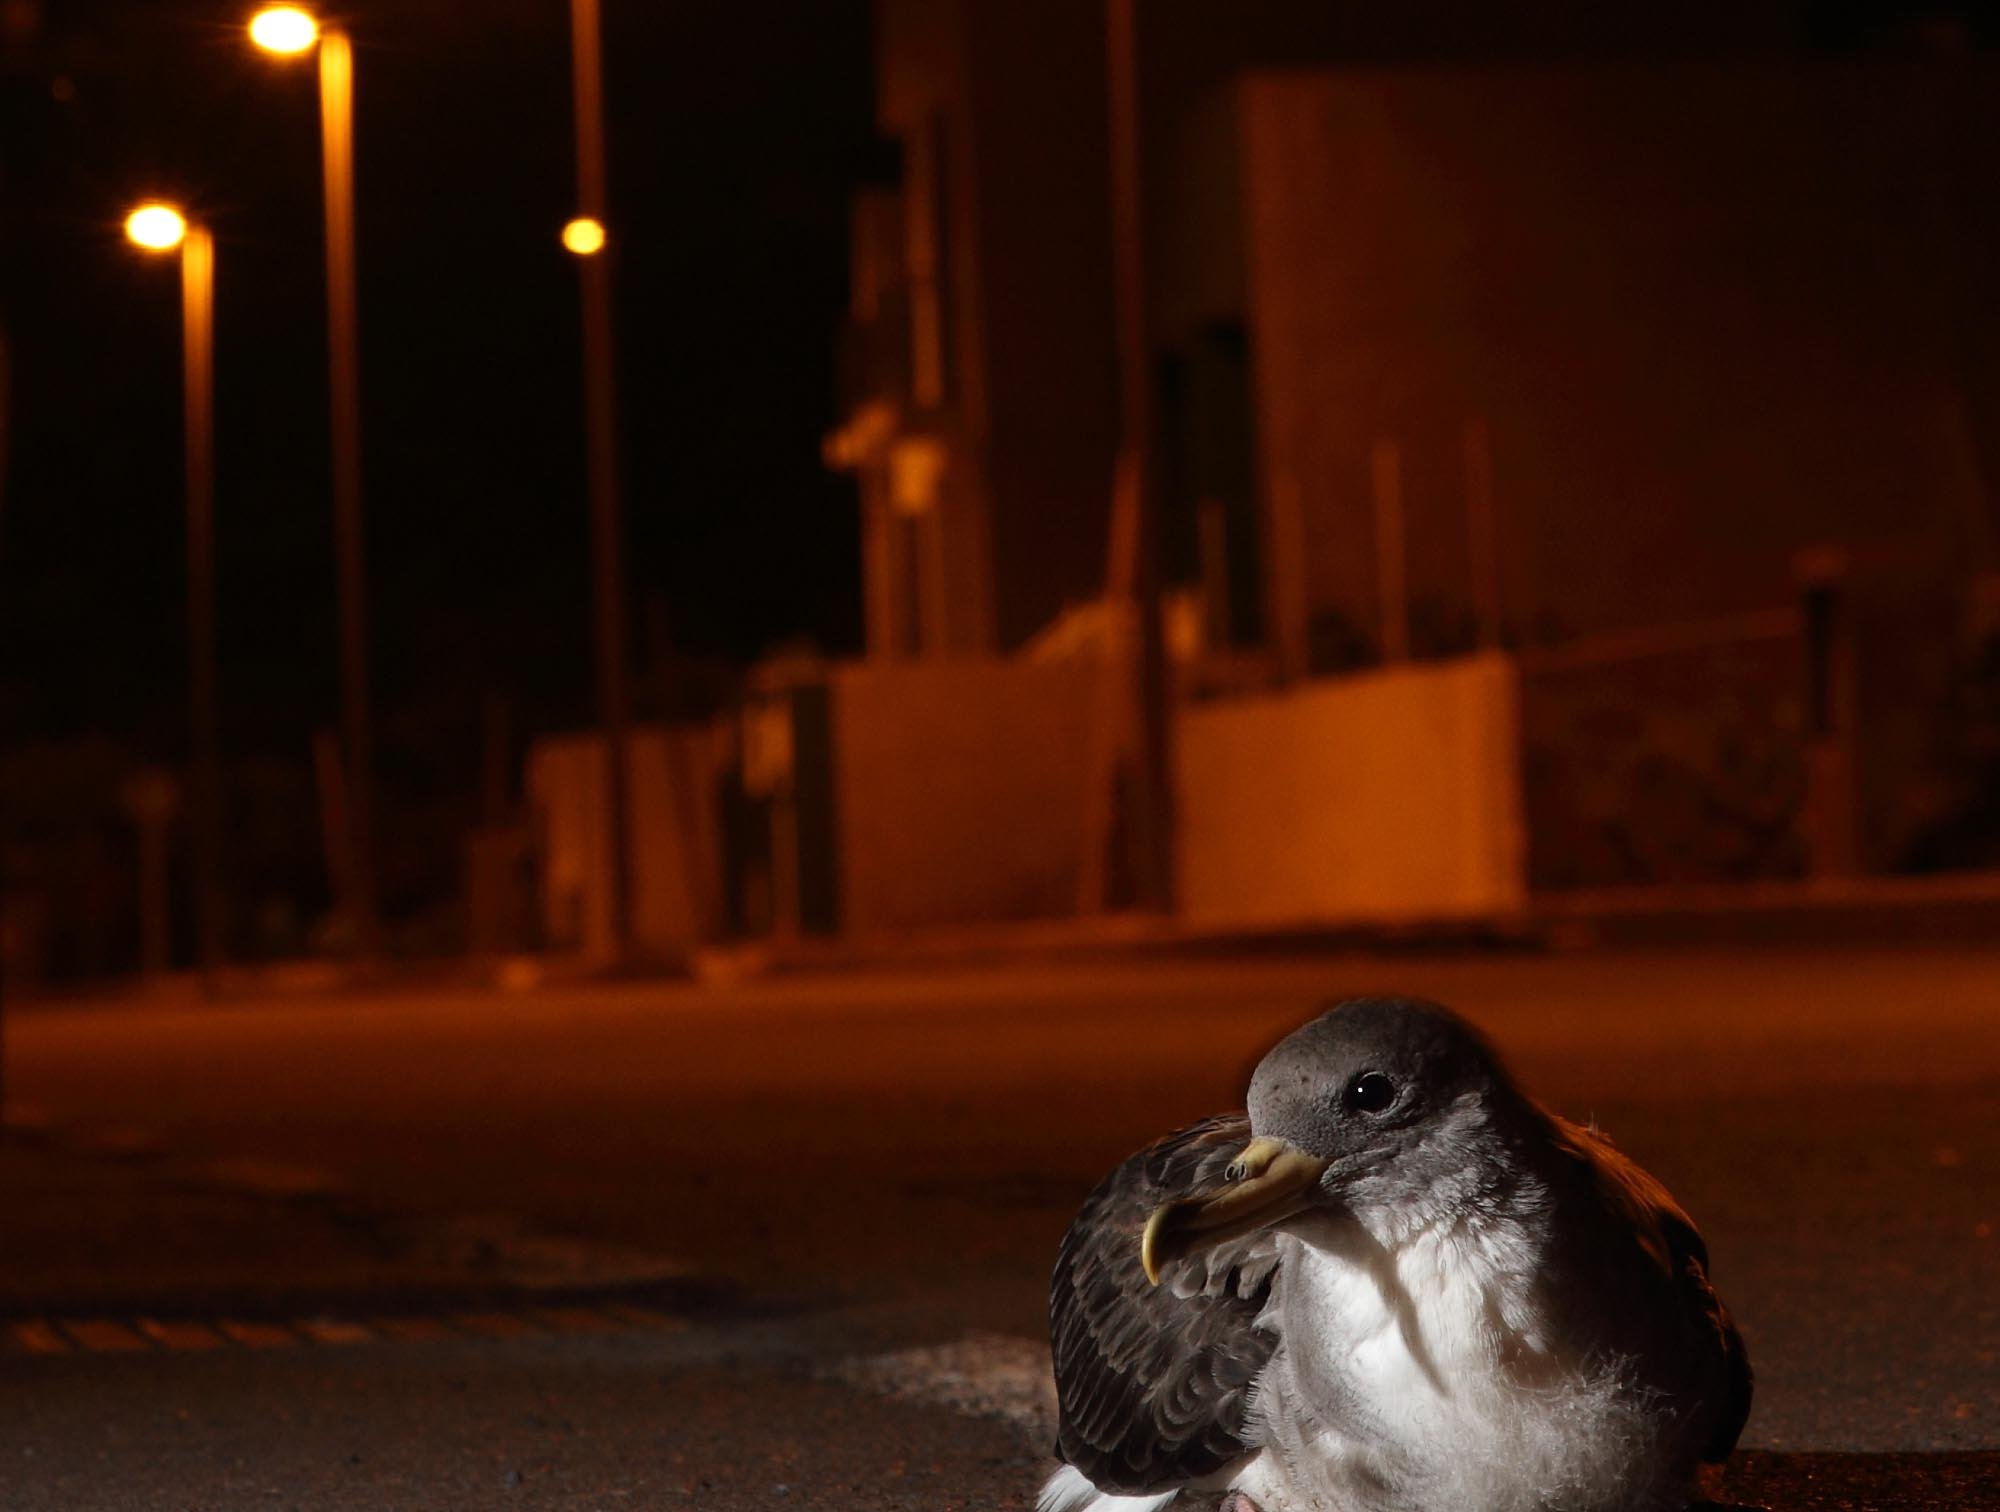 light pollution is altering plant and animal behaviour